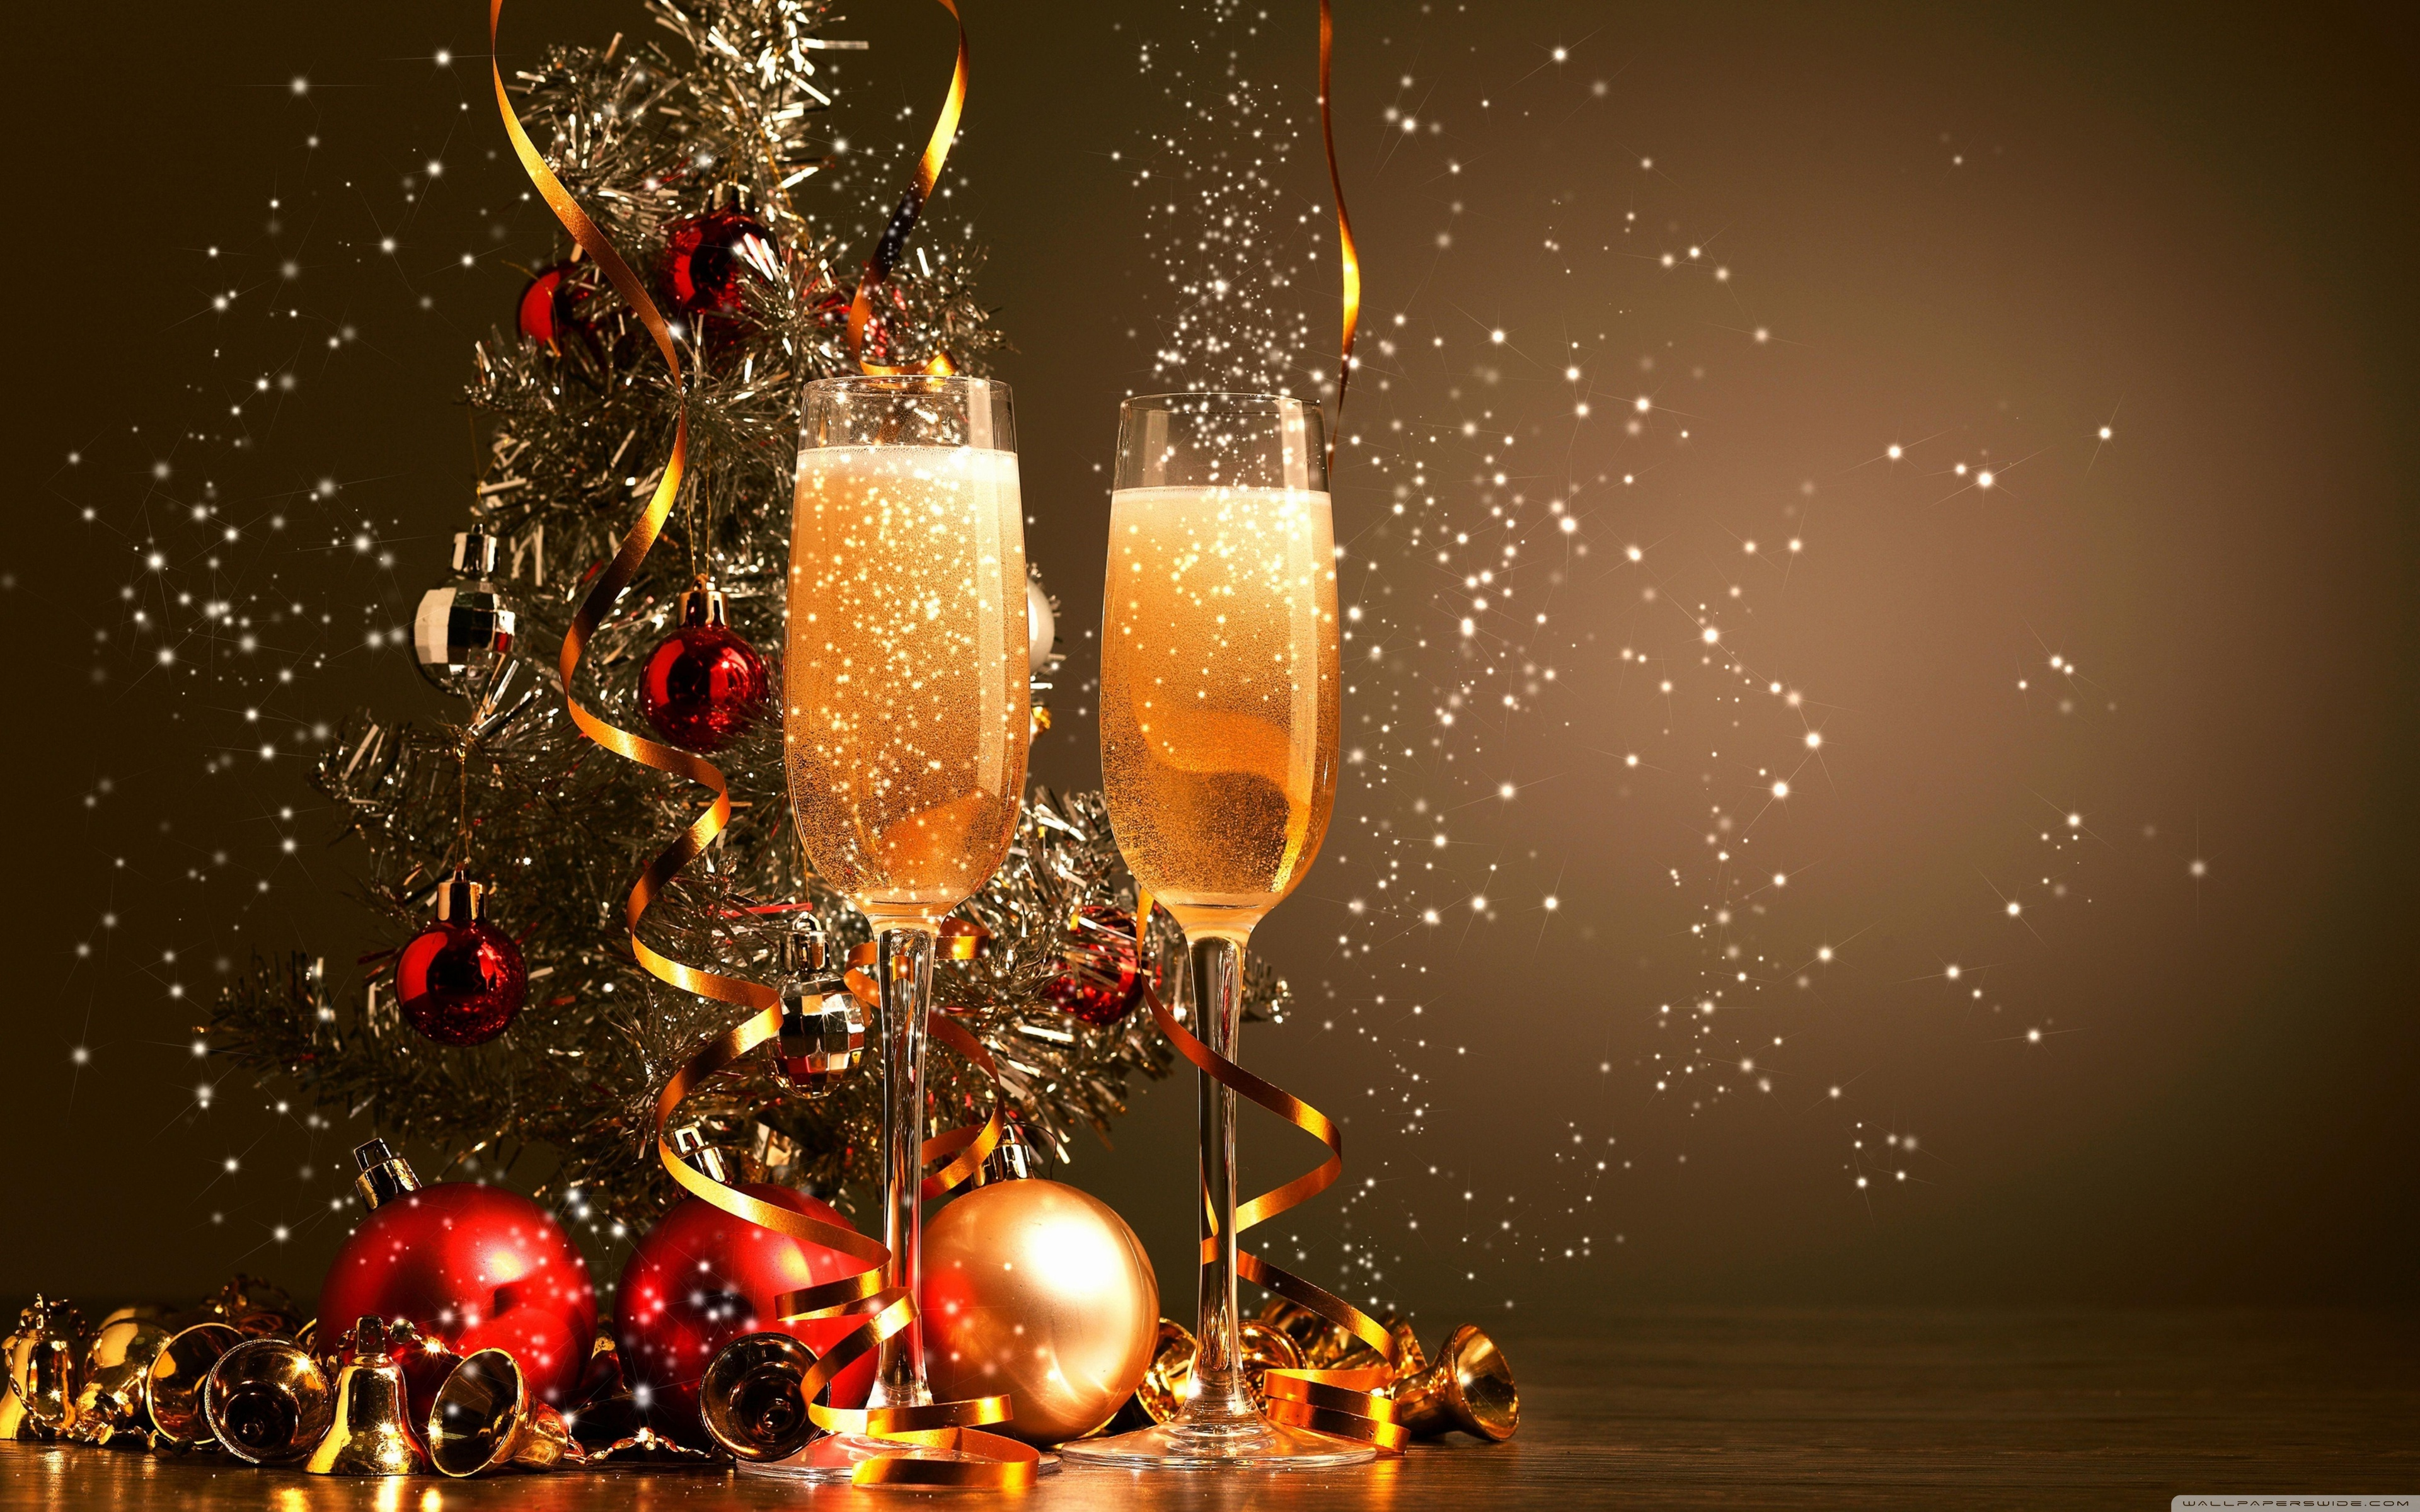 Happy New year 2015 champagne wallpaper Gallery 3840x2400